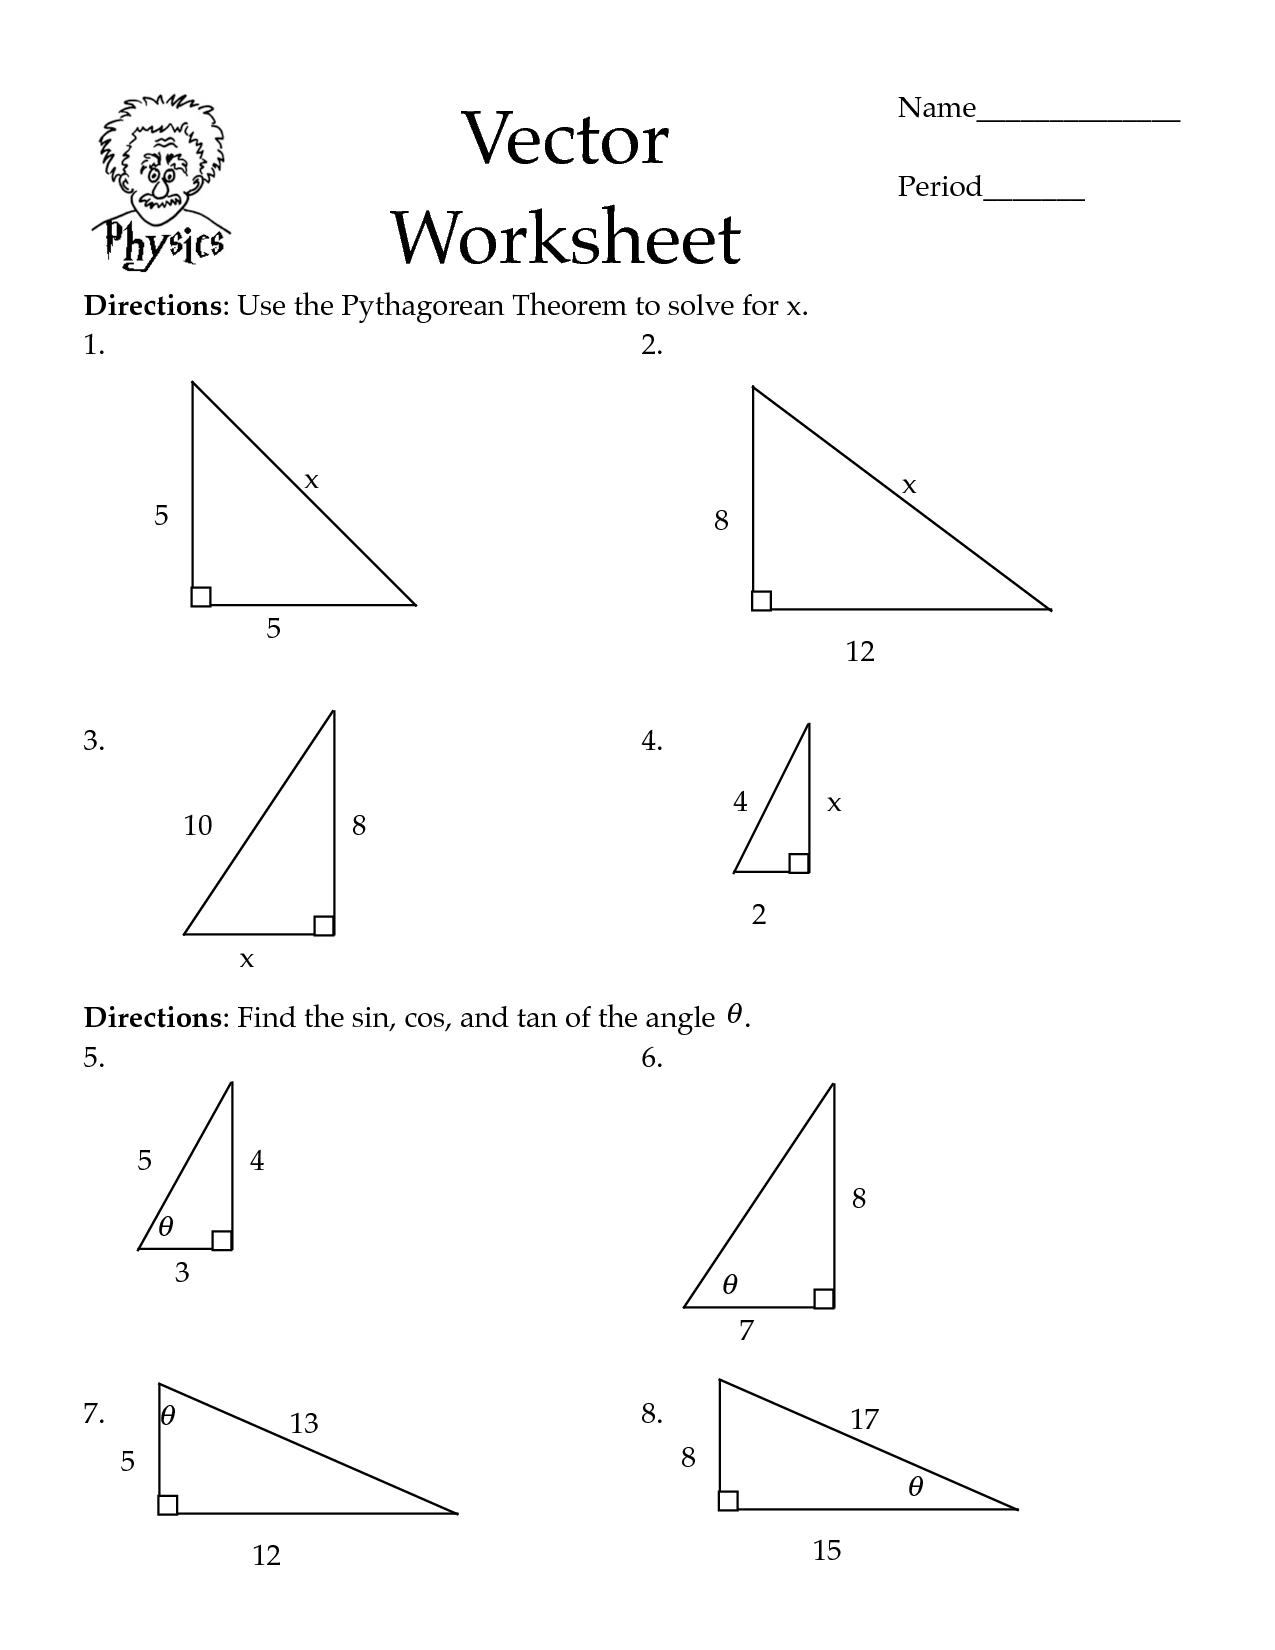 pythagorean theorem worksheets Cos Law Worksheet PDF – Trigonometry Practice Worksheets